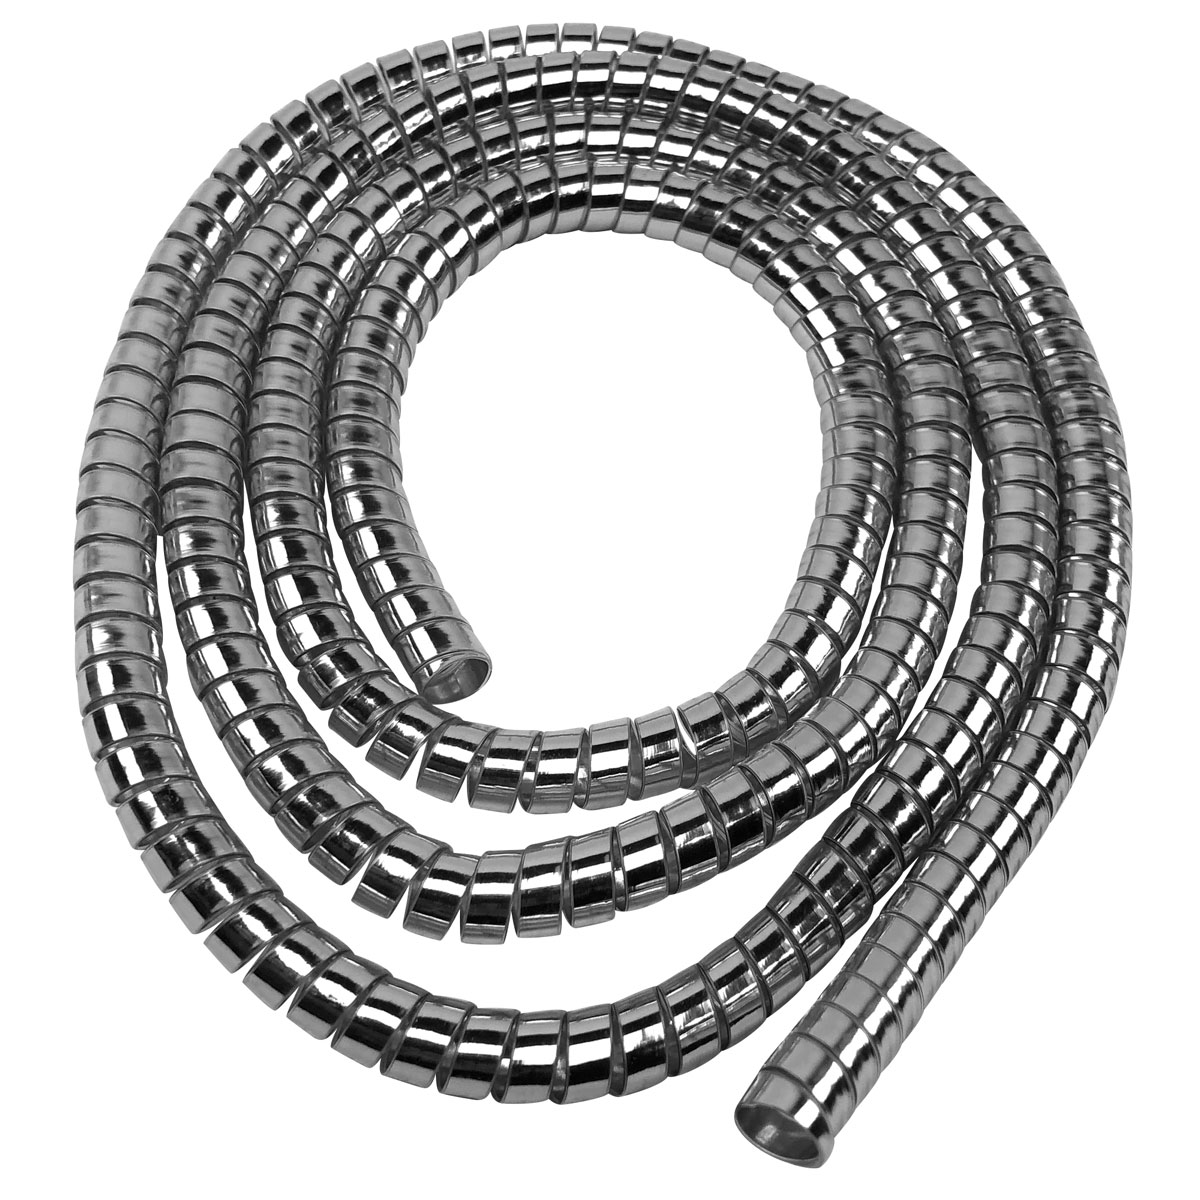 J&P Cycles® Chrome Cable Covering, 5′ x 5/16″ diameter